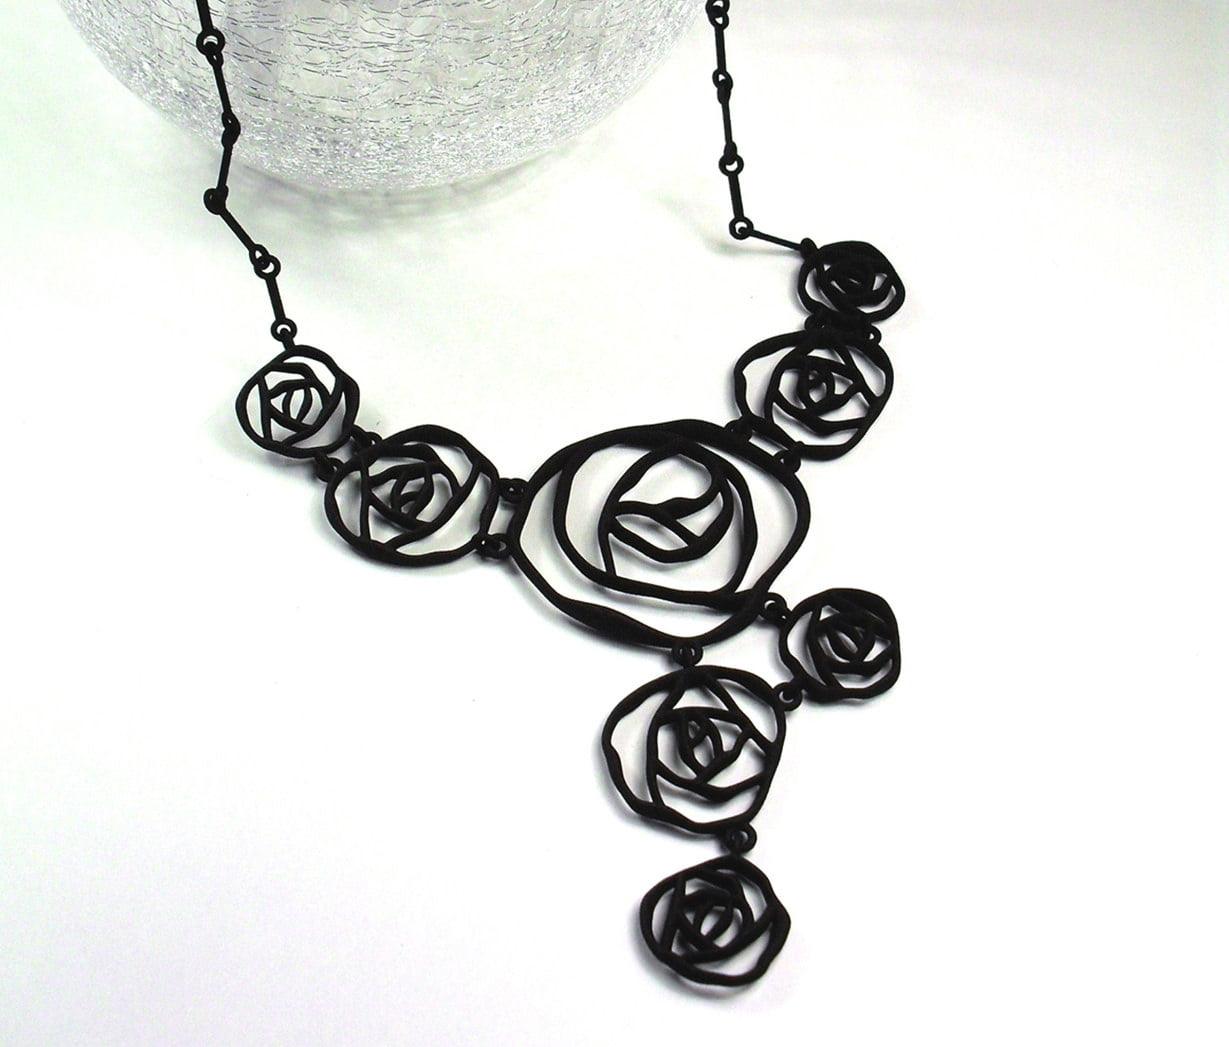 Black_Rose_collana_by_Scapitta_hz